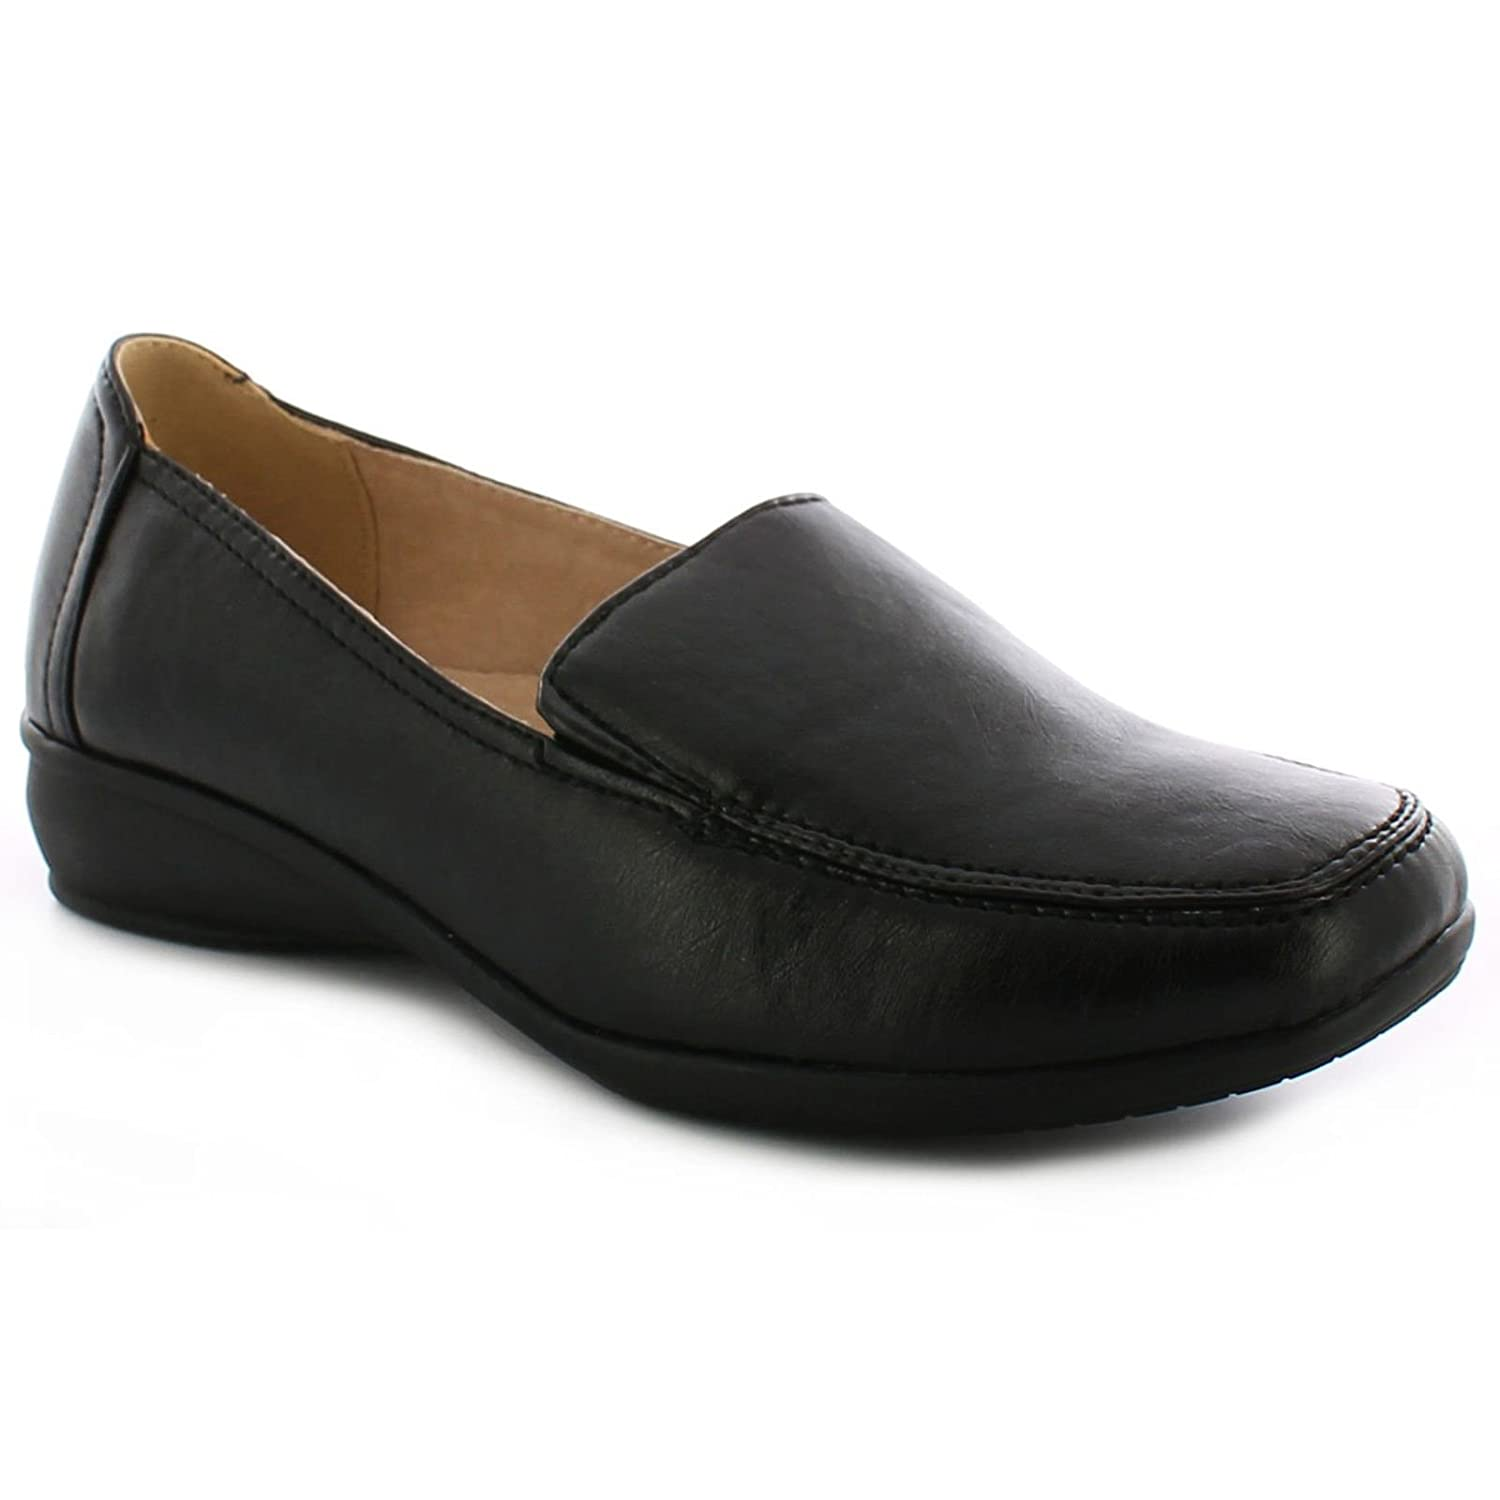 0e3b4e3300e32 Dr Keller Womens Wide Fitting Shoes Ladies Lightweight Moccasin Flat Low  Wedge FIT Comfort Smart Casual Formal Office Work Leather Lined Light  Weight Loafer ...